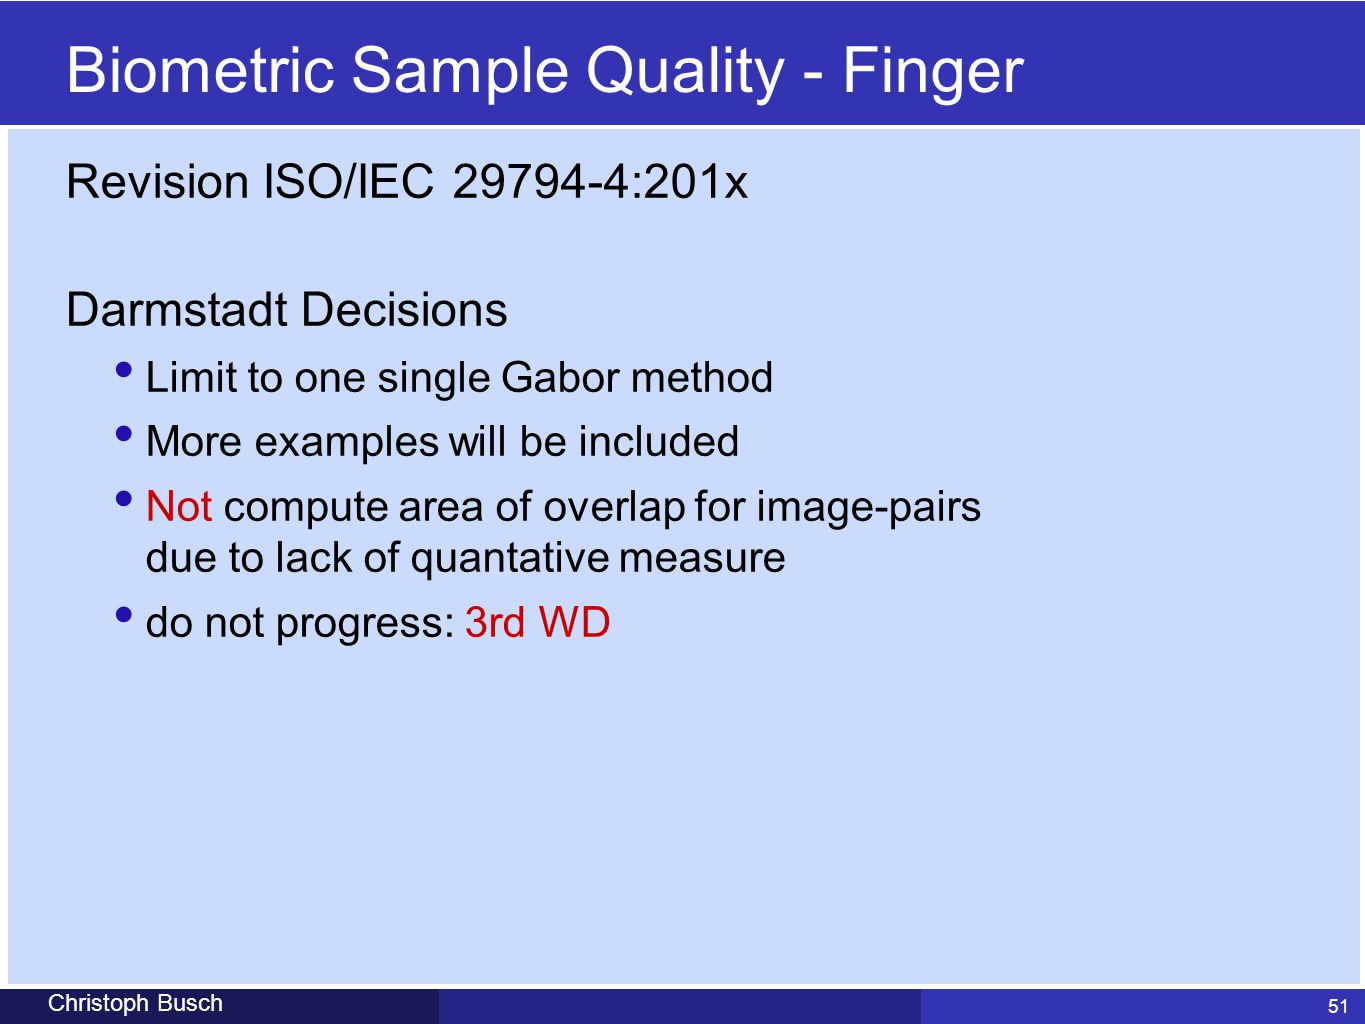 51 Christoph Busch Biometric Sample Quality - Finger Revision ISO/IEC 29794-4:201x Darmstadt Decisions Limit to one single Gabor method More examples